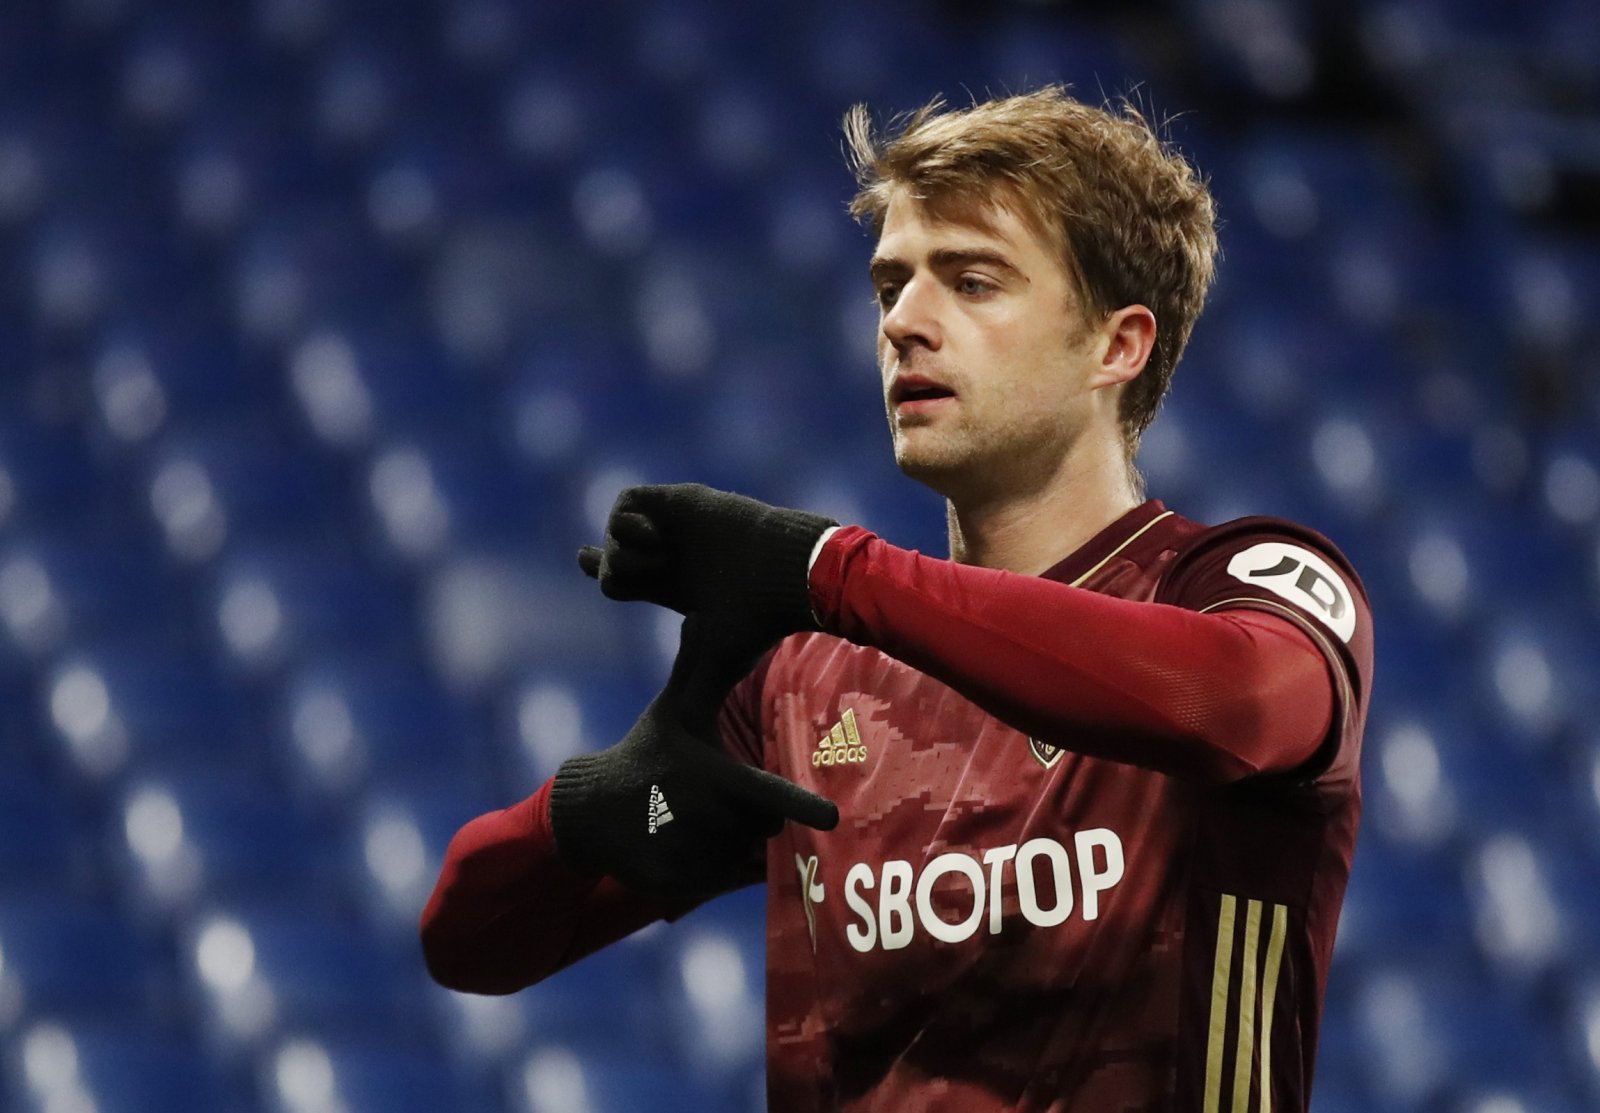 Liverpool 'admire' Leeds Utd star Patrick Bamford, but new deal could inflate fees